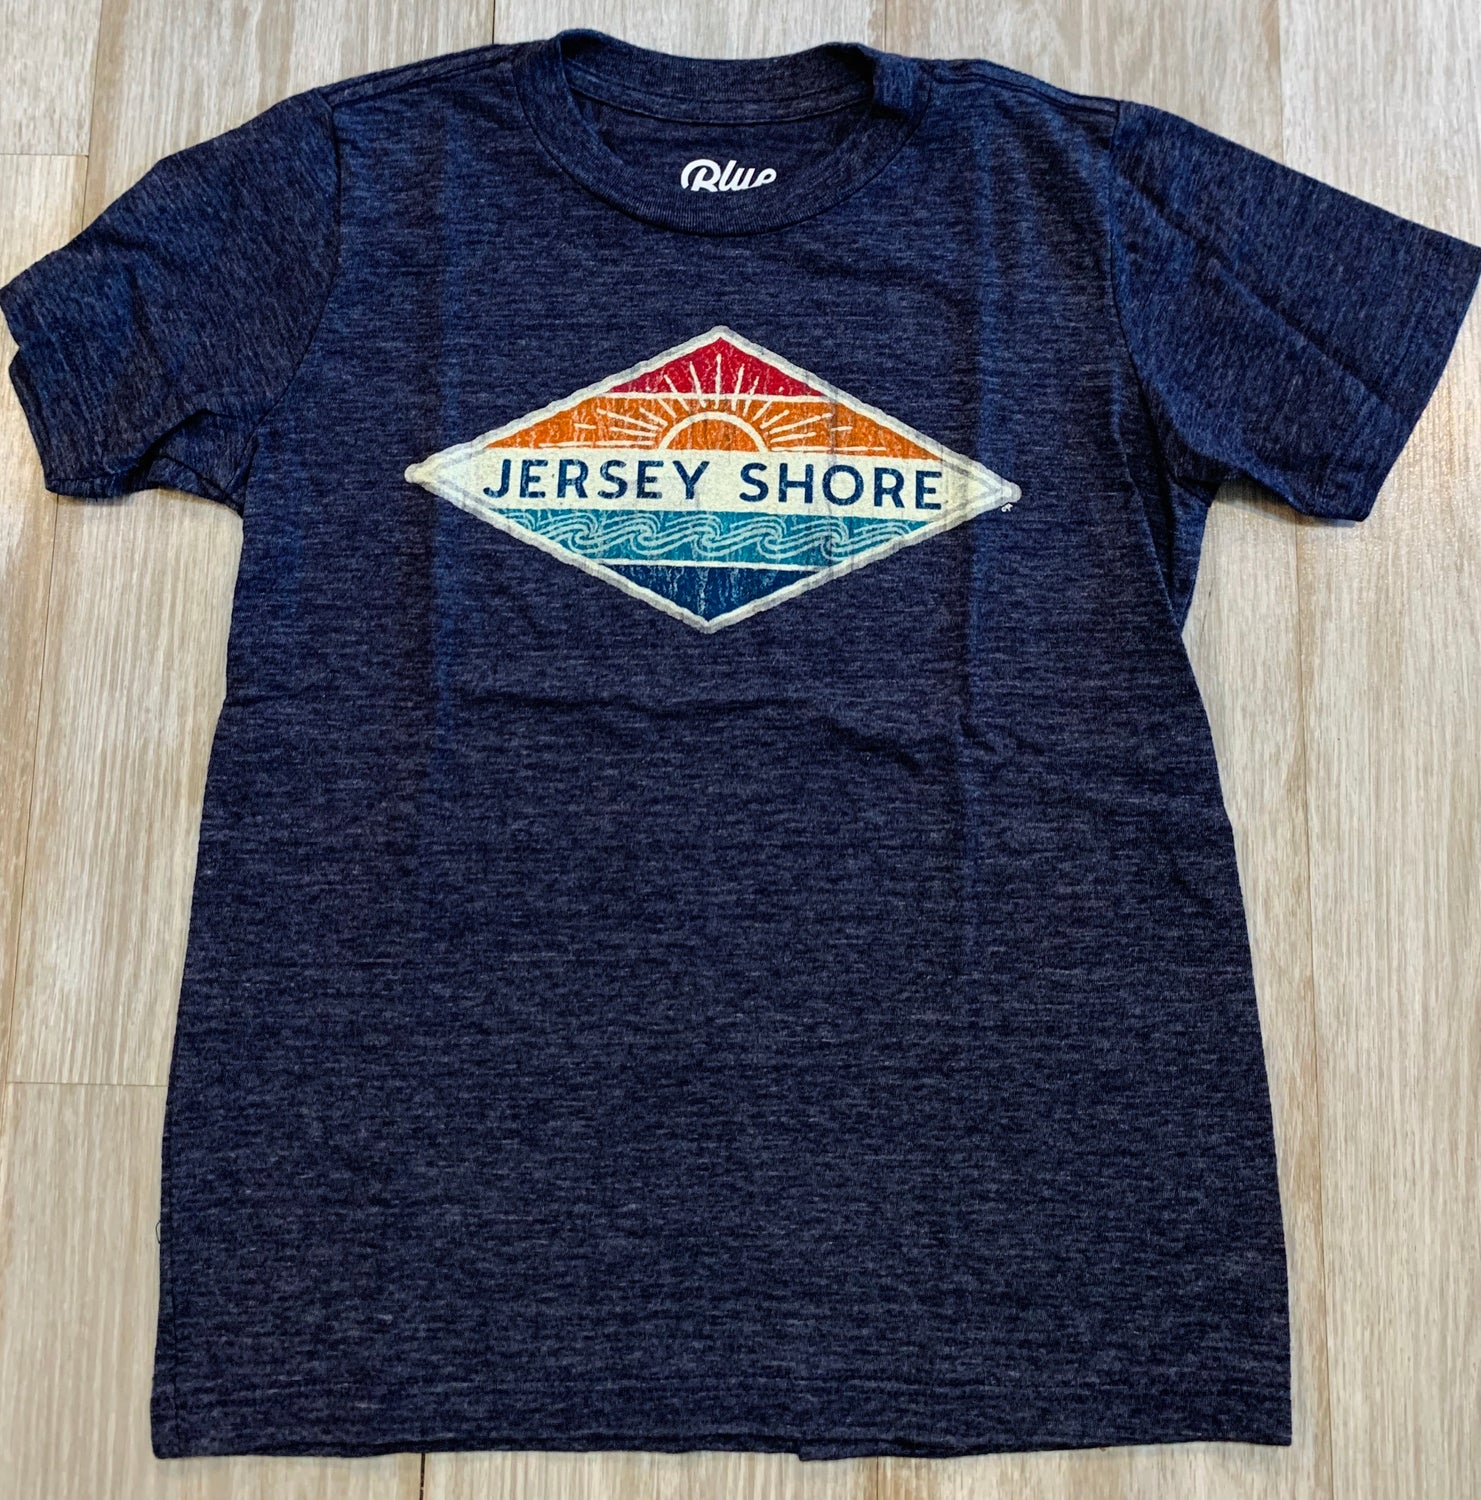 Jersey Shore oil burner sun kids tee (2 colors)